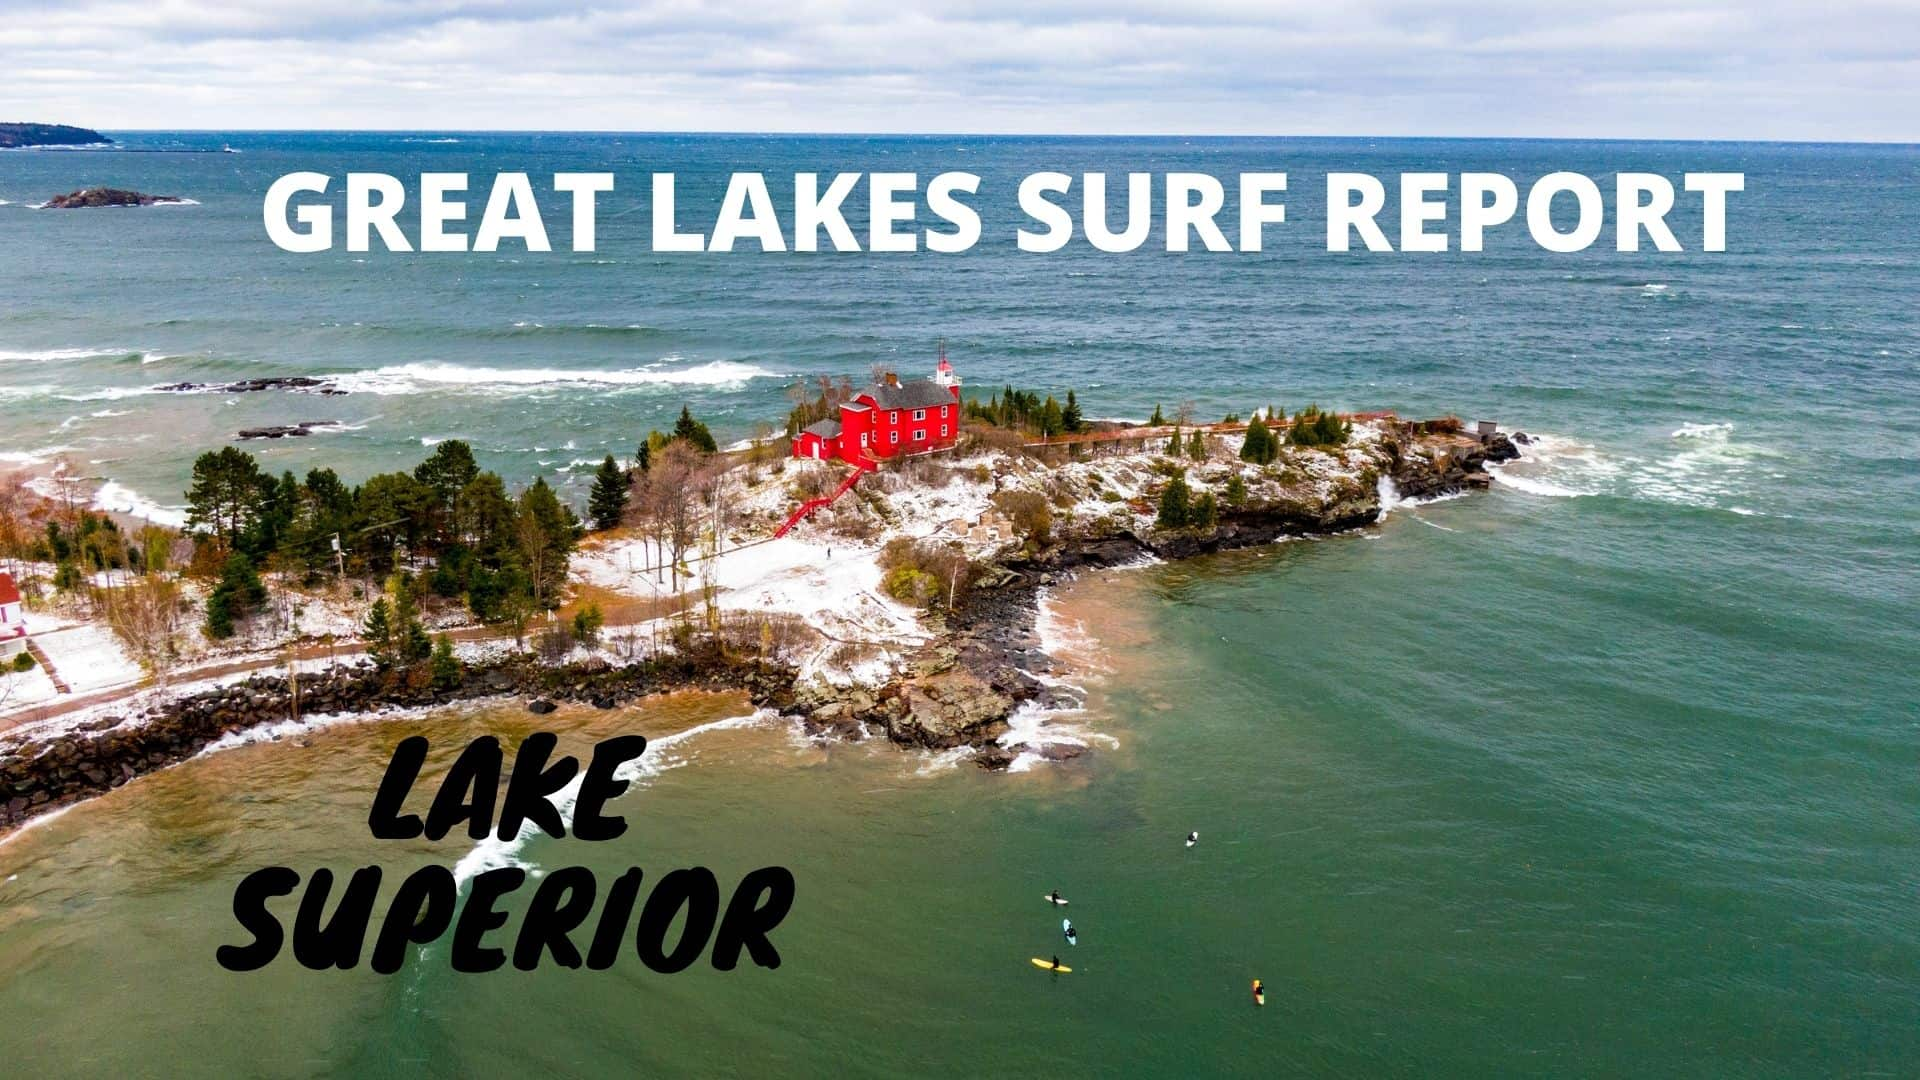 Great Lakes Surfing: Surf more Lakes in 2020 (Video)